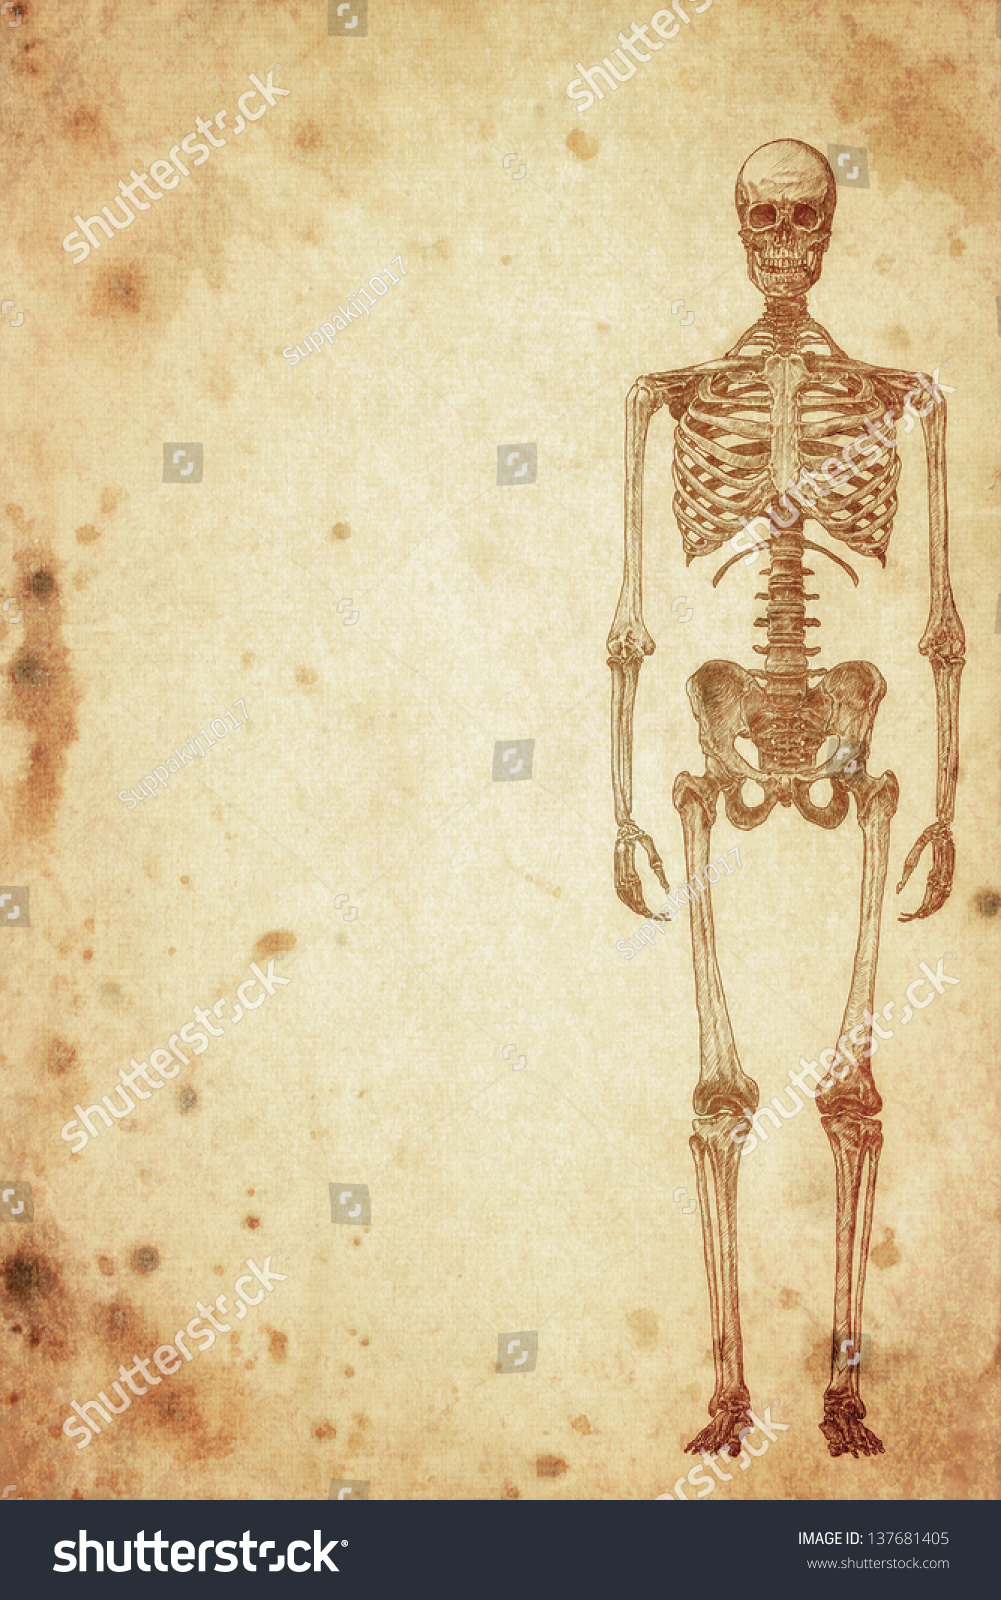 human skeleton essay The human skeleton consists of 206 bones we are actually born with more bones (about 300), but many fuse together as a child grows up these bones support your body and allow you to move bones contain a lot of calcium (an element found in milk, broccoli, and other foods) bones manufacture blood .